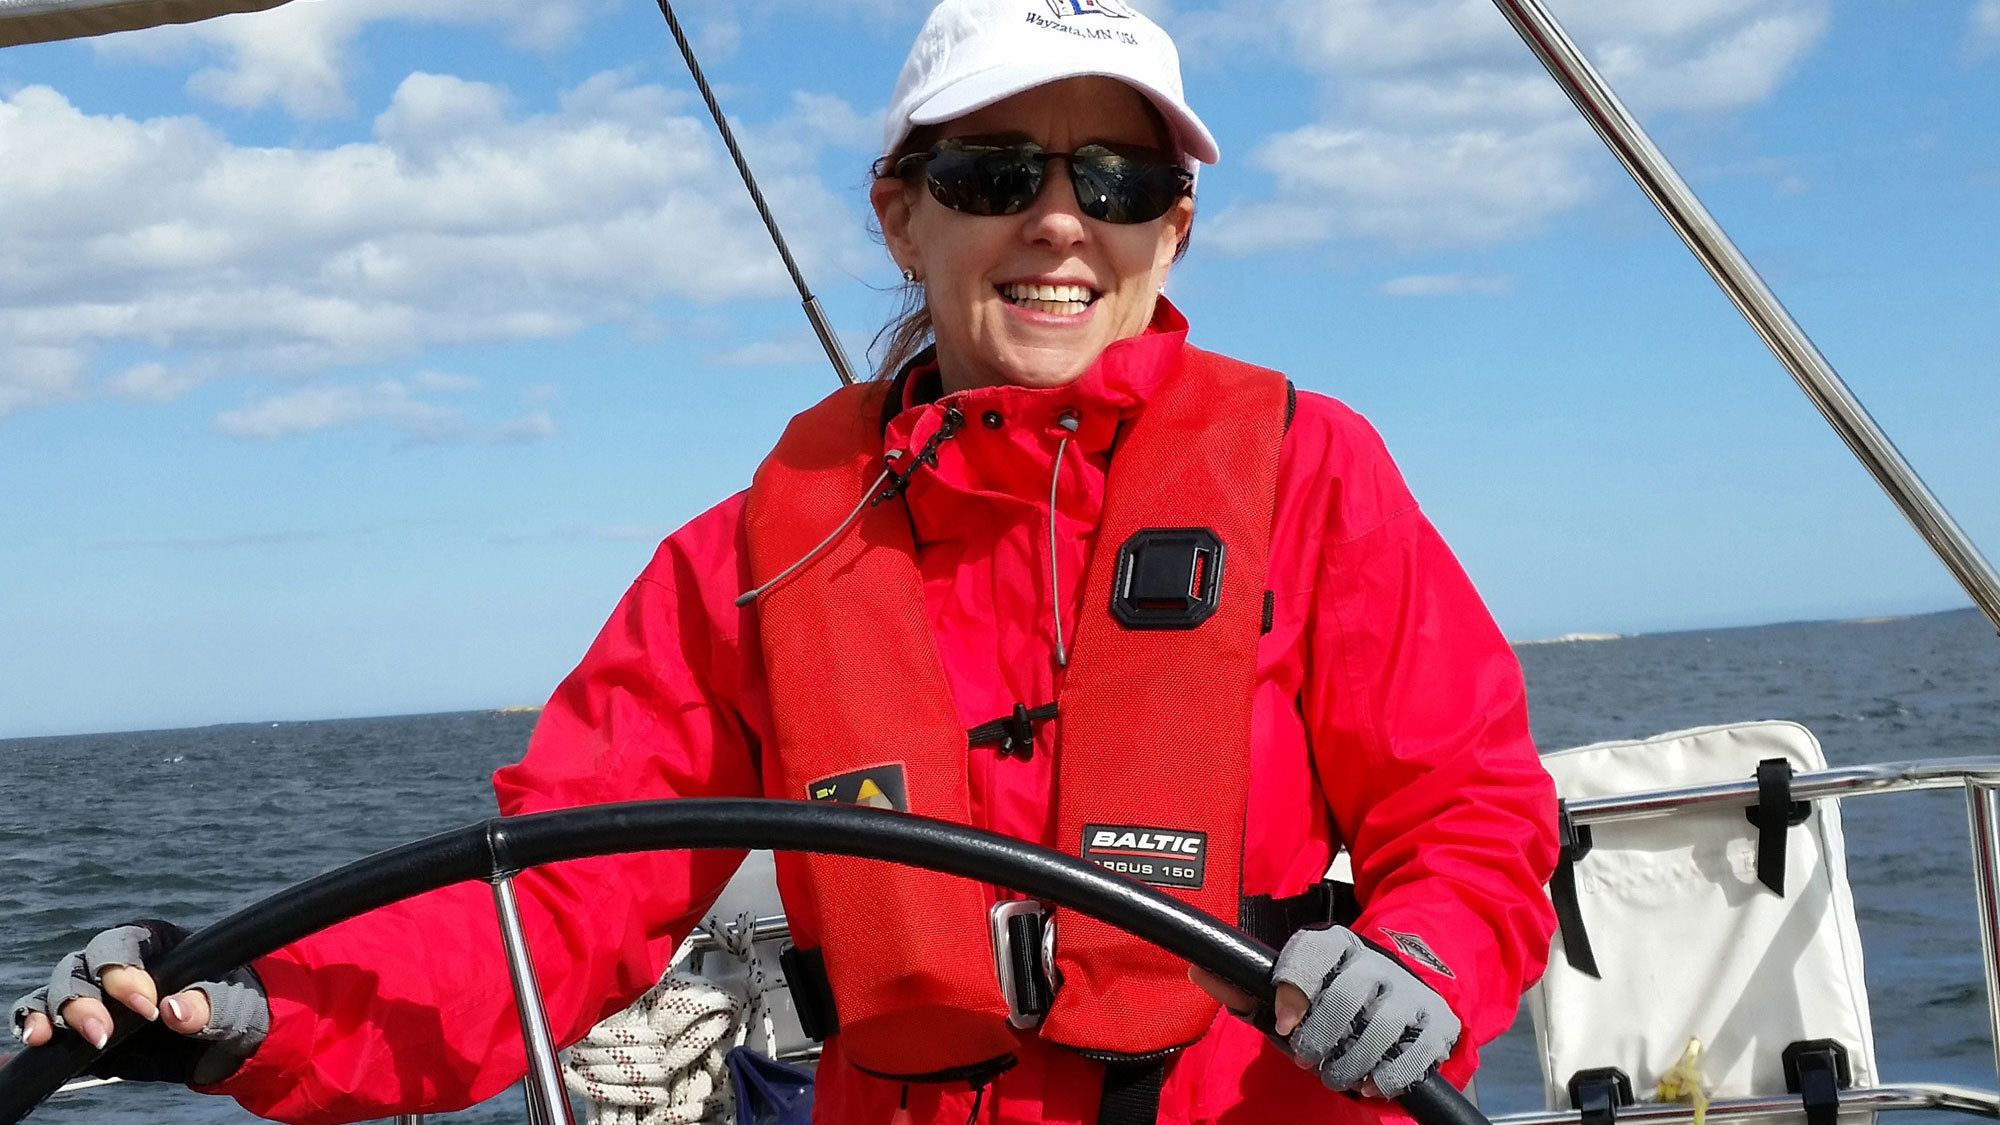 Woman smiles as she pilots sailboat in Stockholm Archipelago